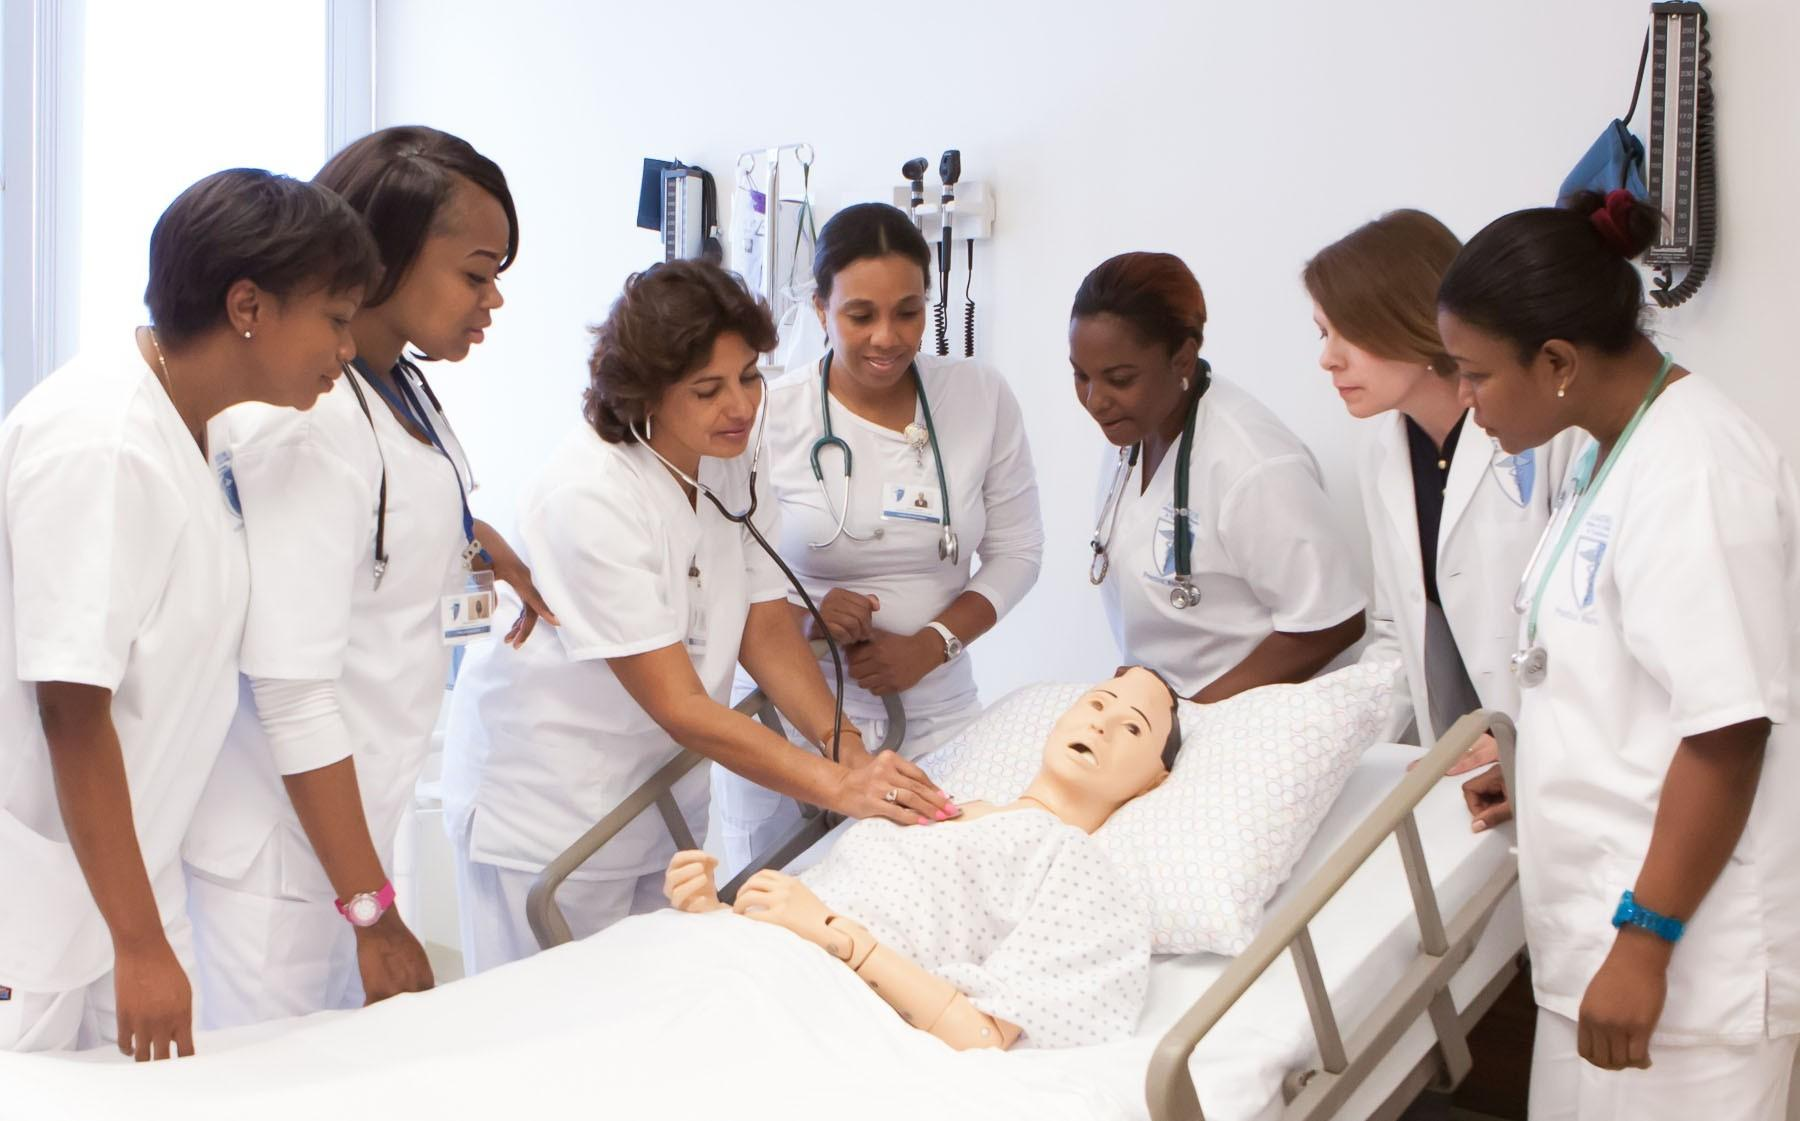 Medical Assistant Certification Training School in Palm Beach